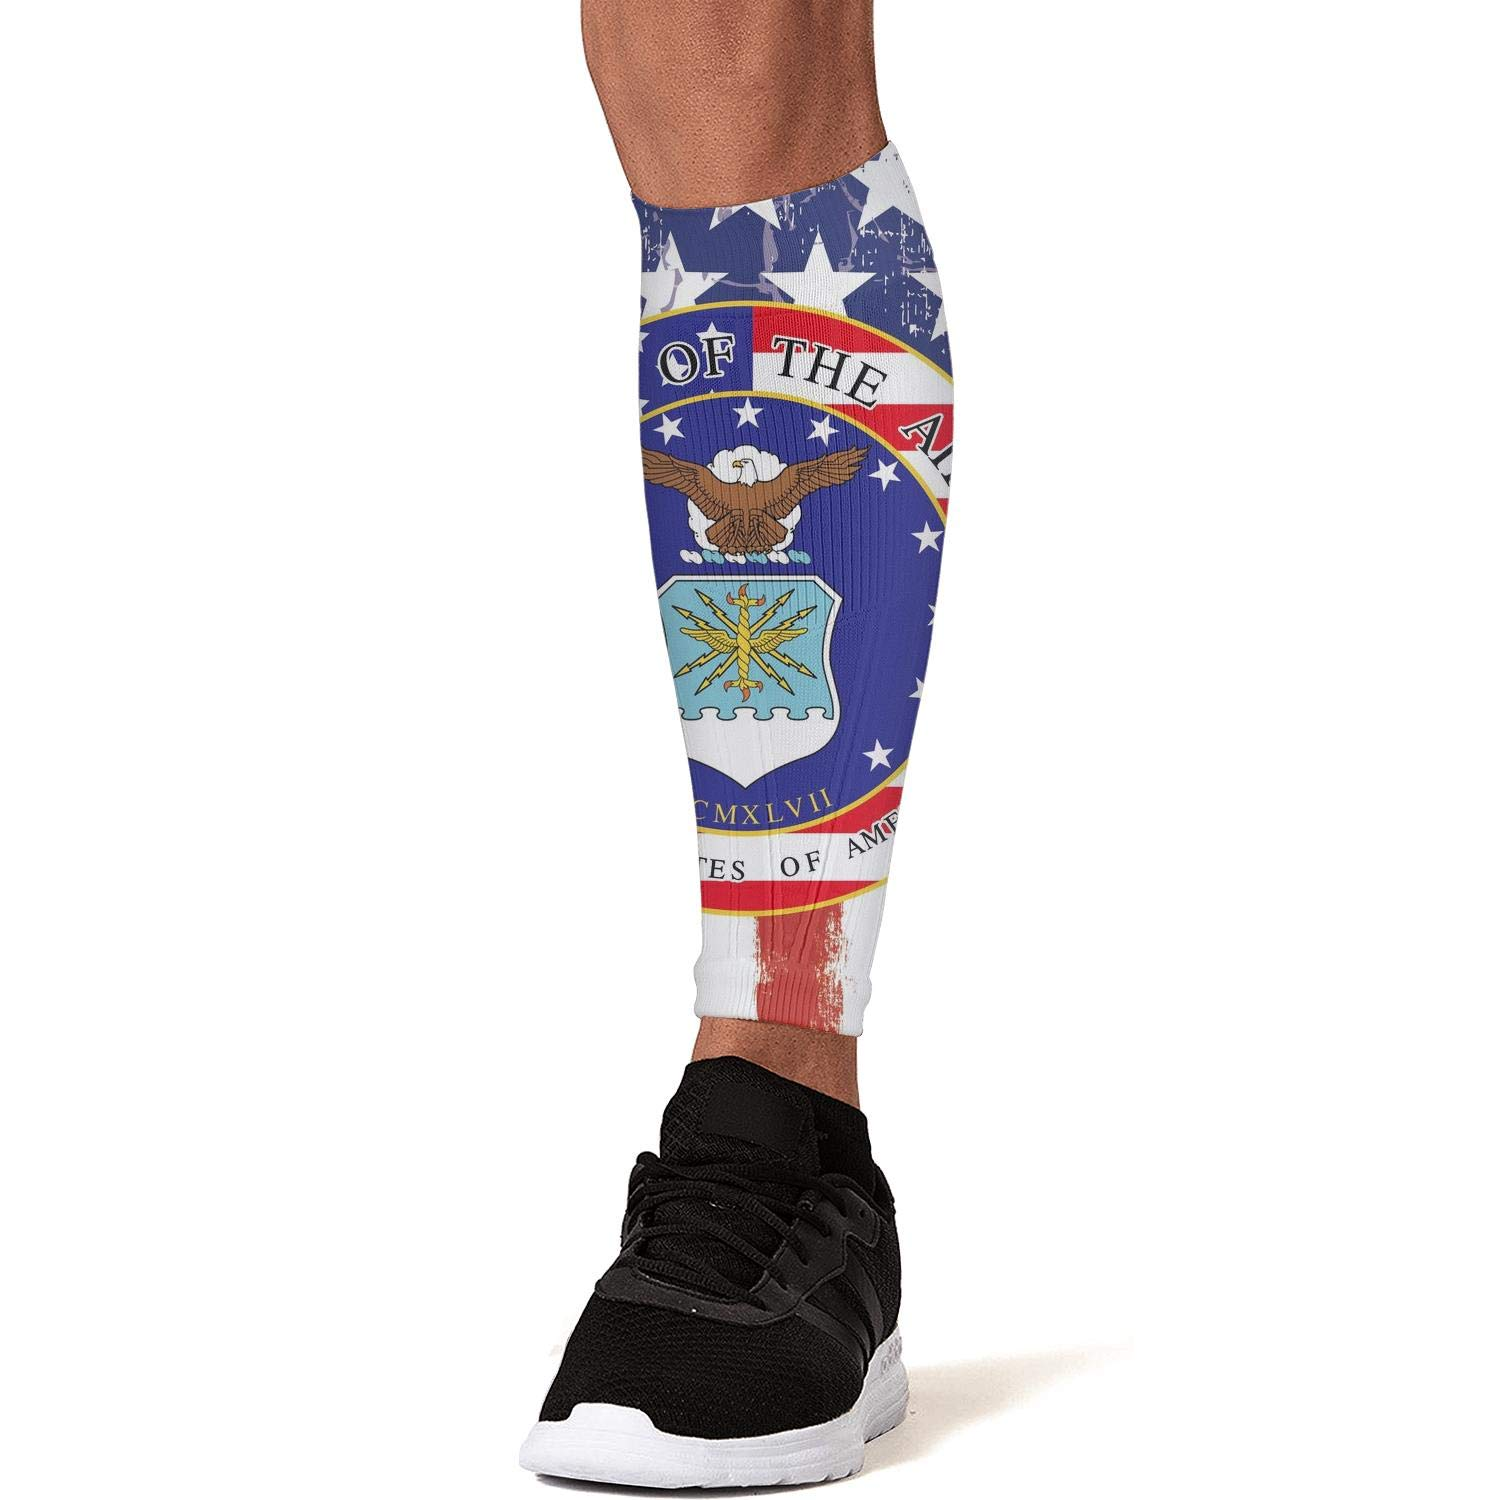 Smilelolly american flag us air force Calf Compression Sleeves Helps Pain Relief Leg Sleeves for Men Women